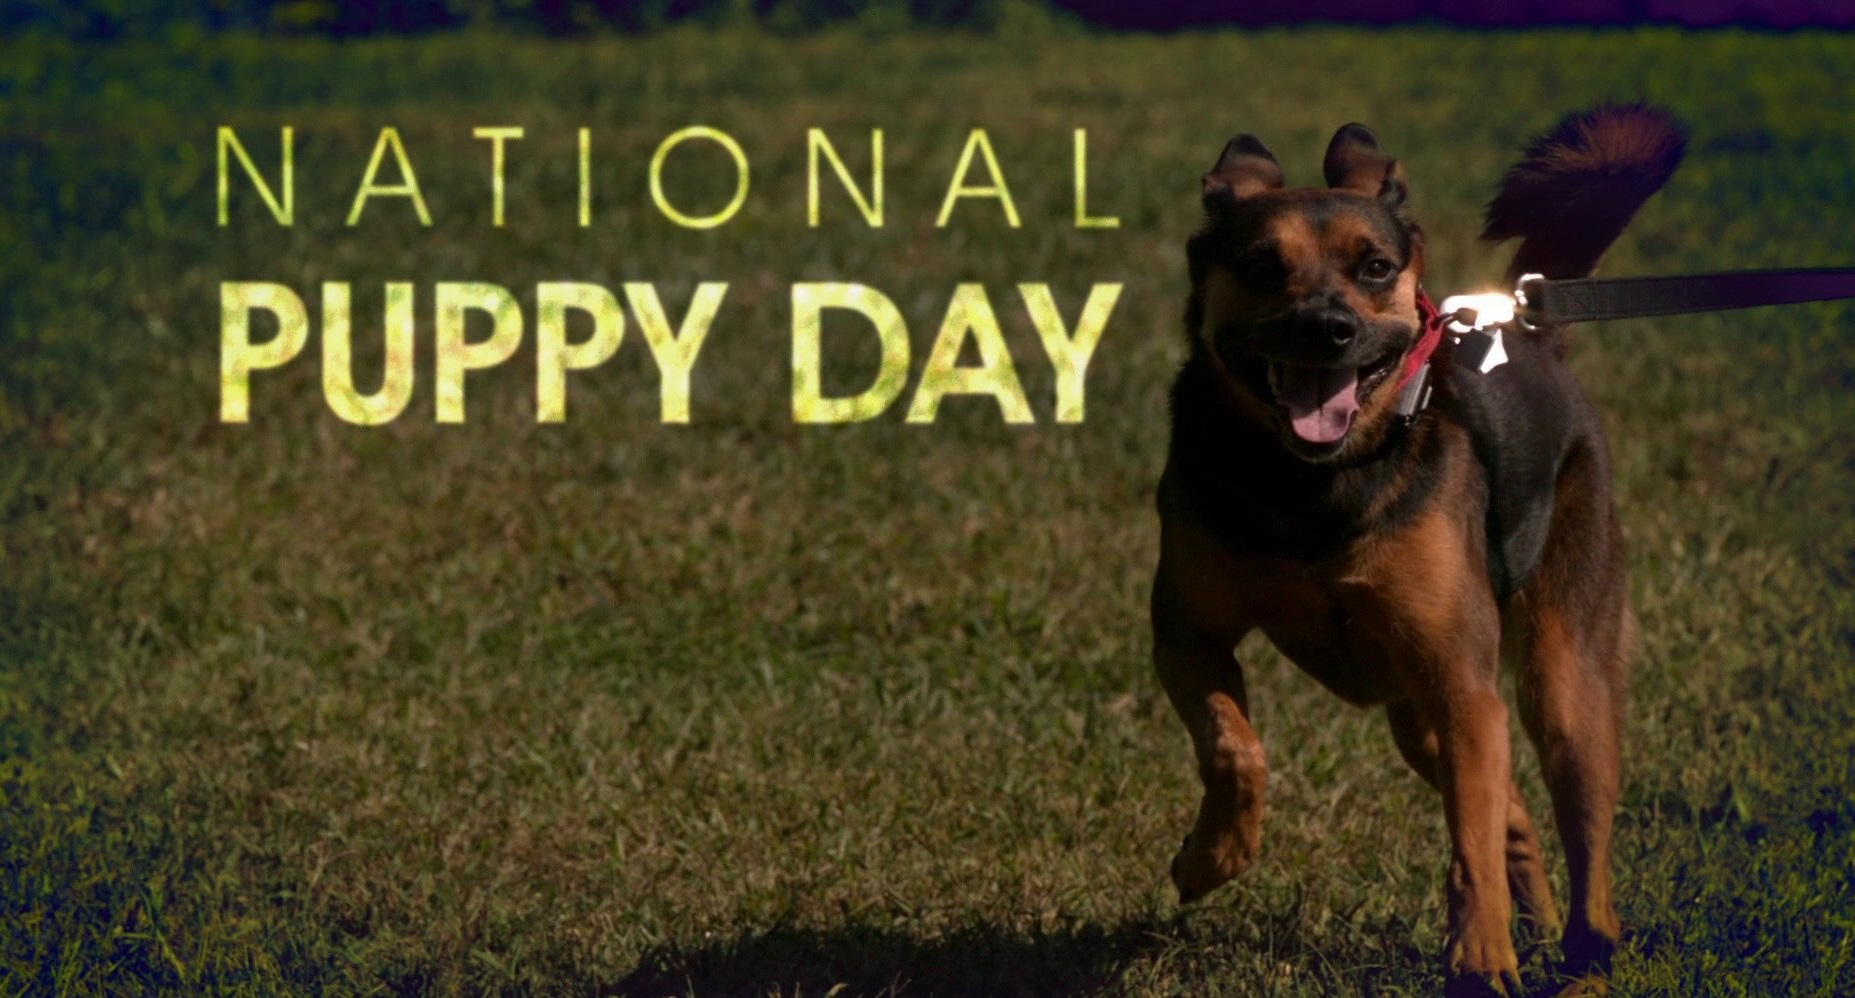 It's National Puppy Day! What You Need To Know Before Adopting A Dog